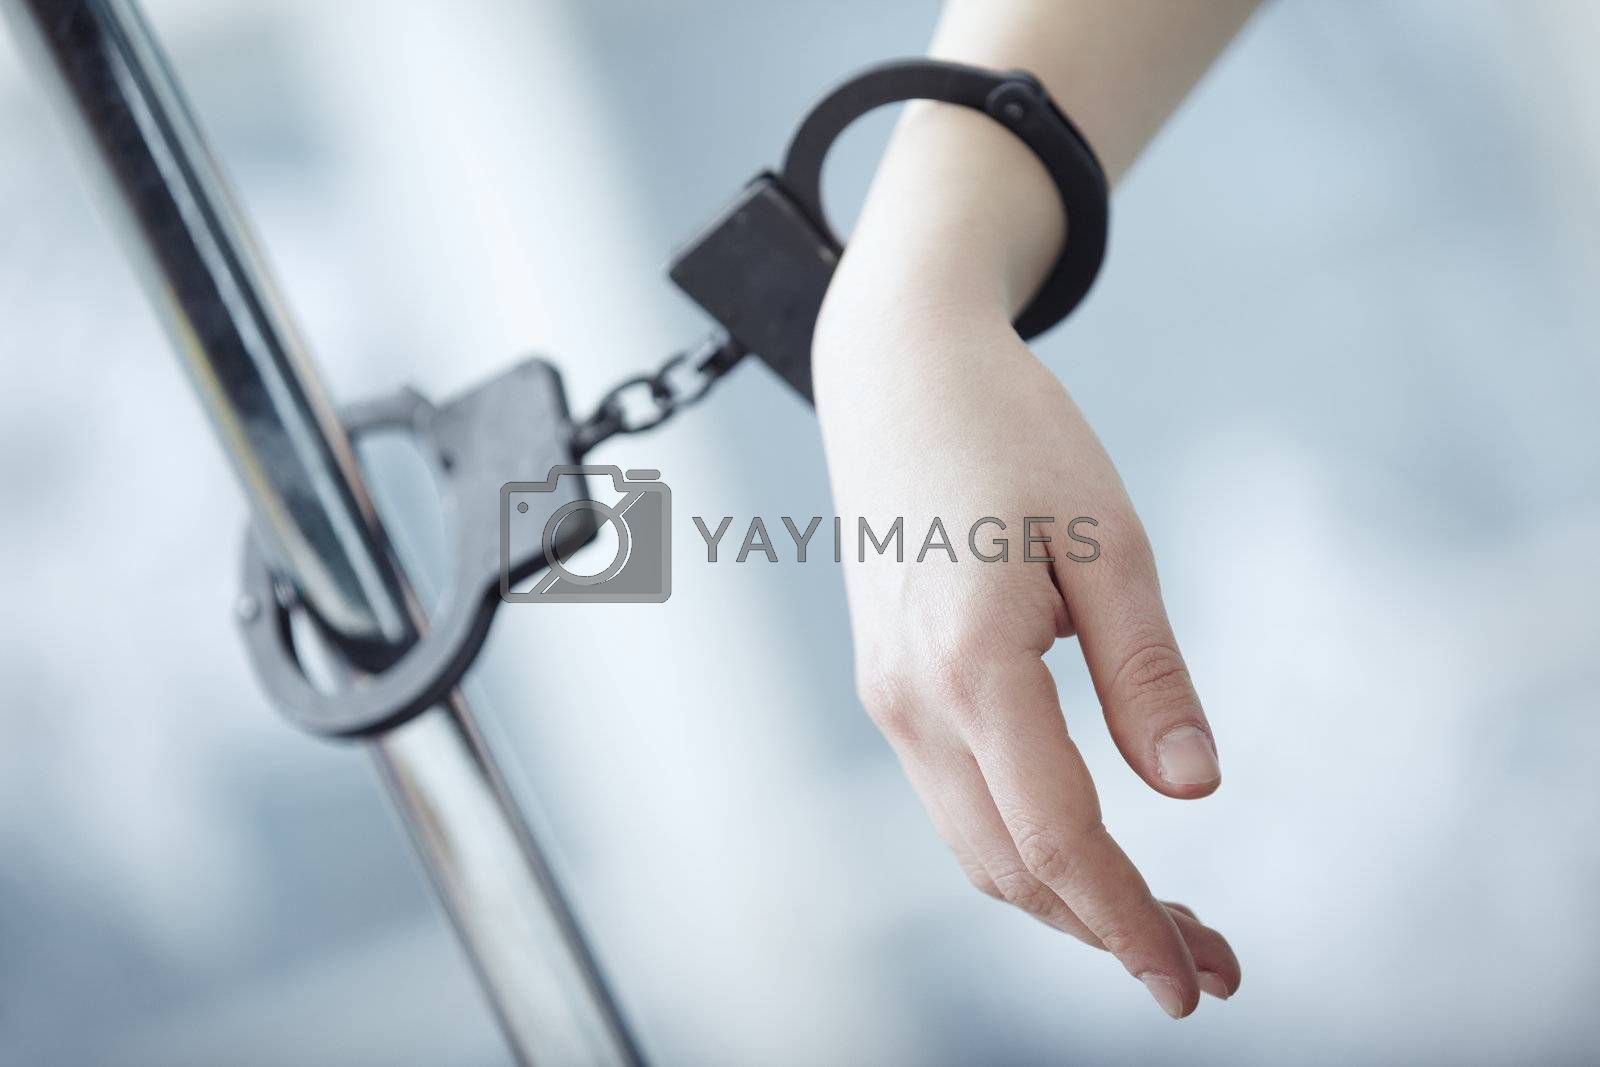 Human hand bounded to the metal pole by handcuffs